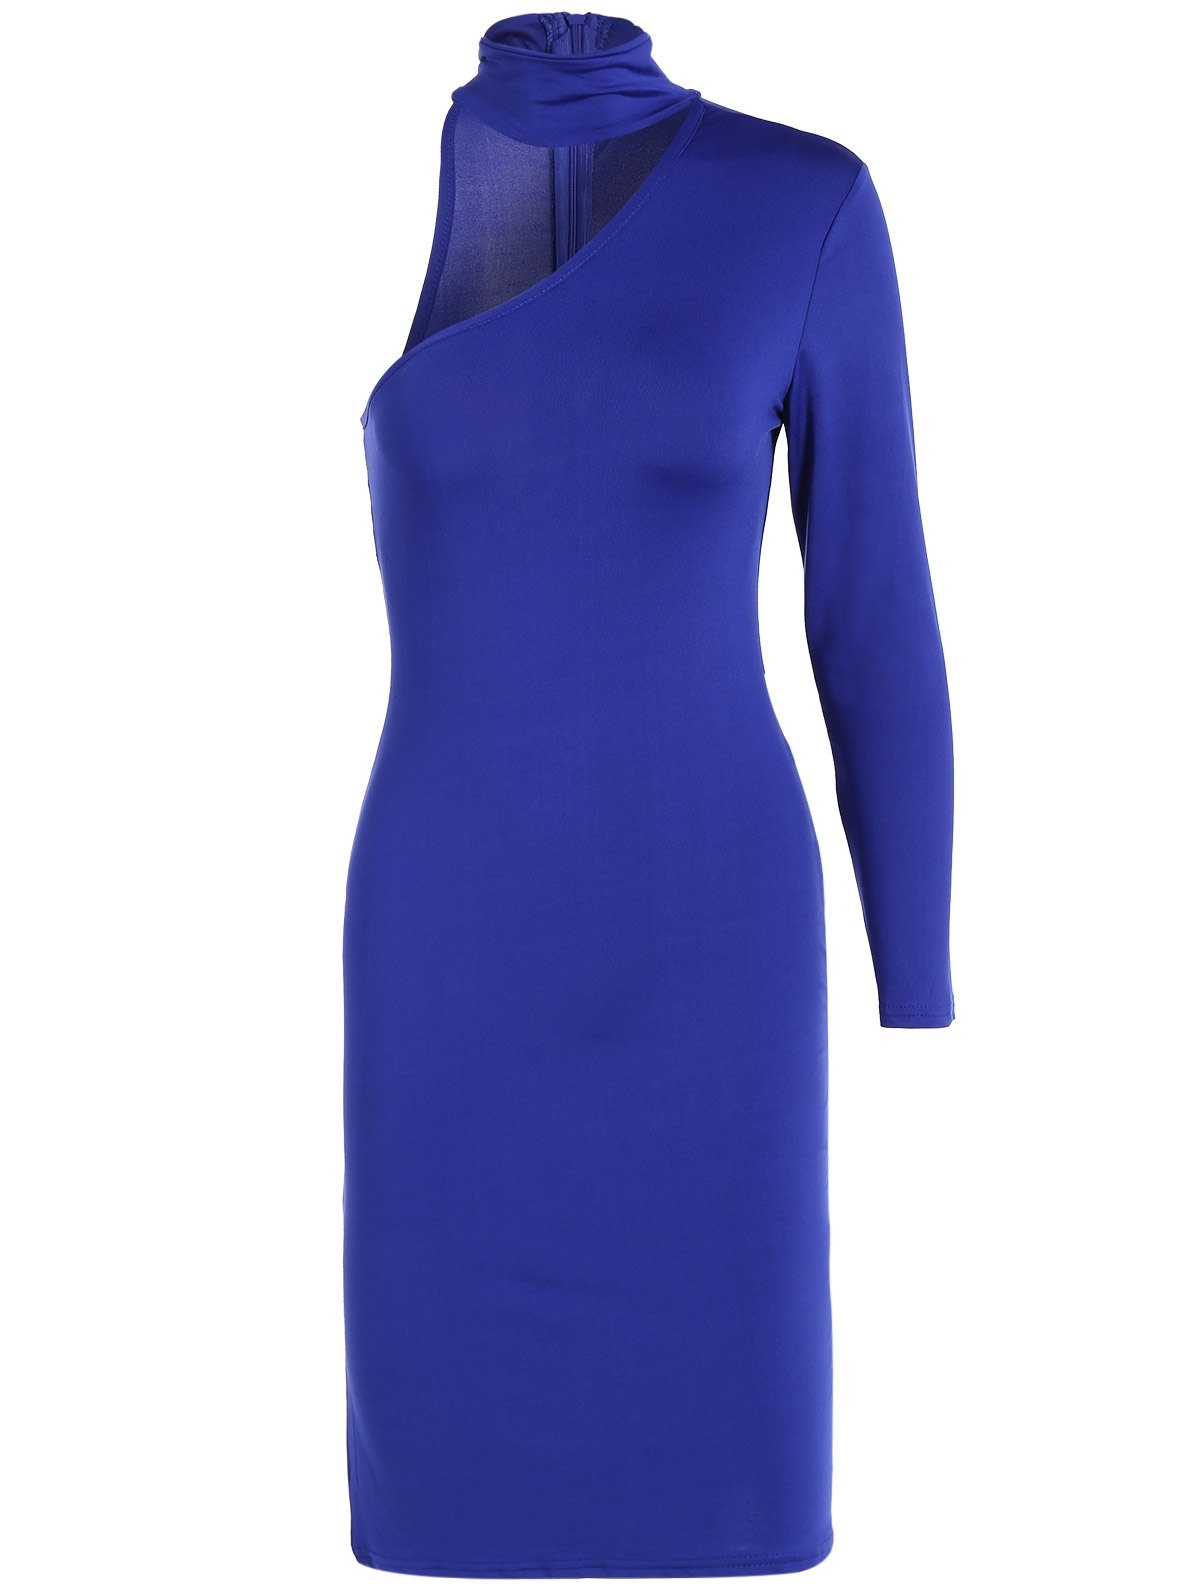 Long Sleeve One Shoulder Bodycon Dress - ROYAL BLUE M